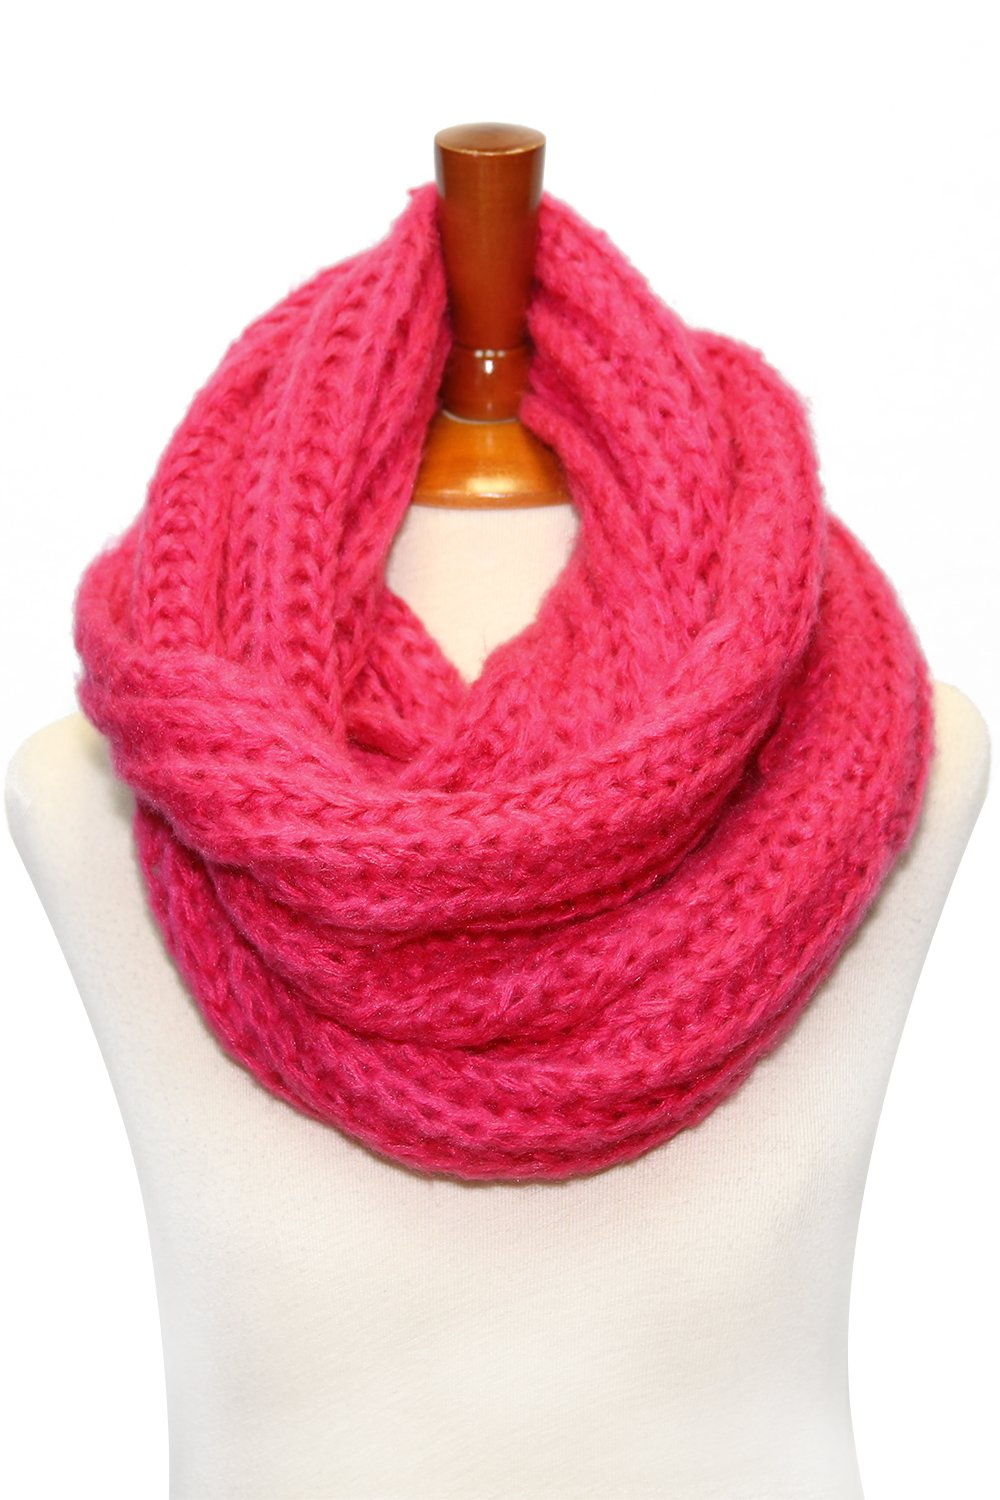 Basico Women Warm Circle Ring Infinity Scarf Neck Warmer Various Colors (S3 Hot Pink)